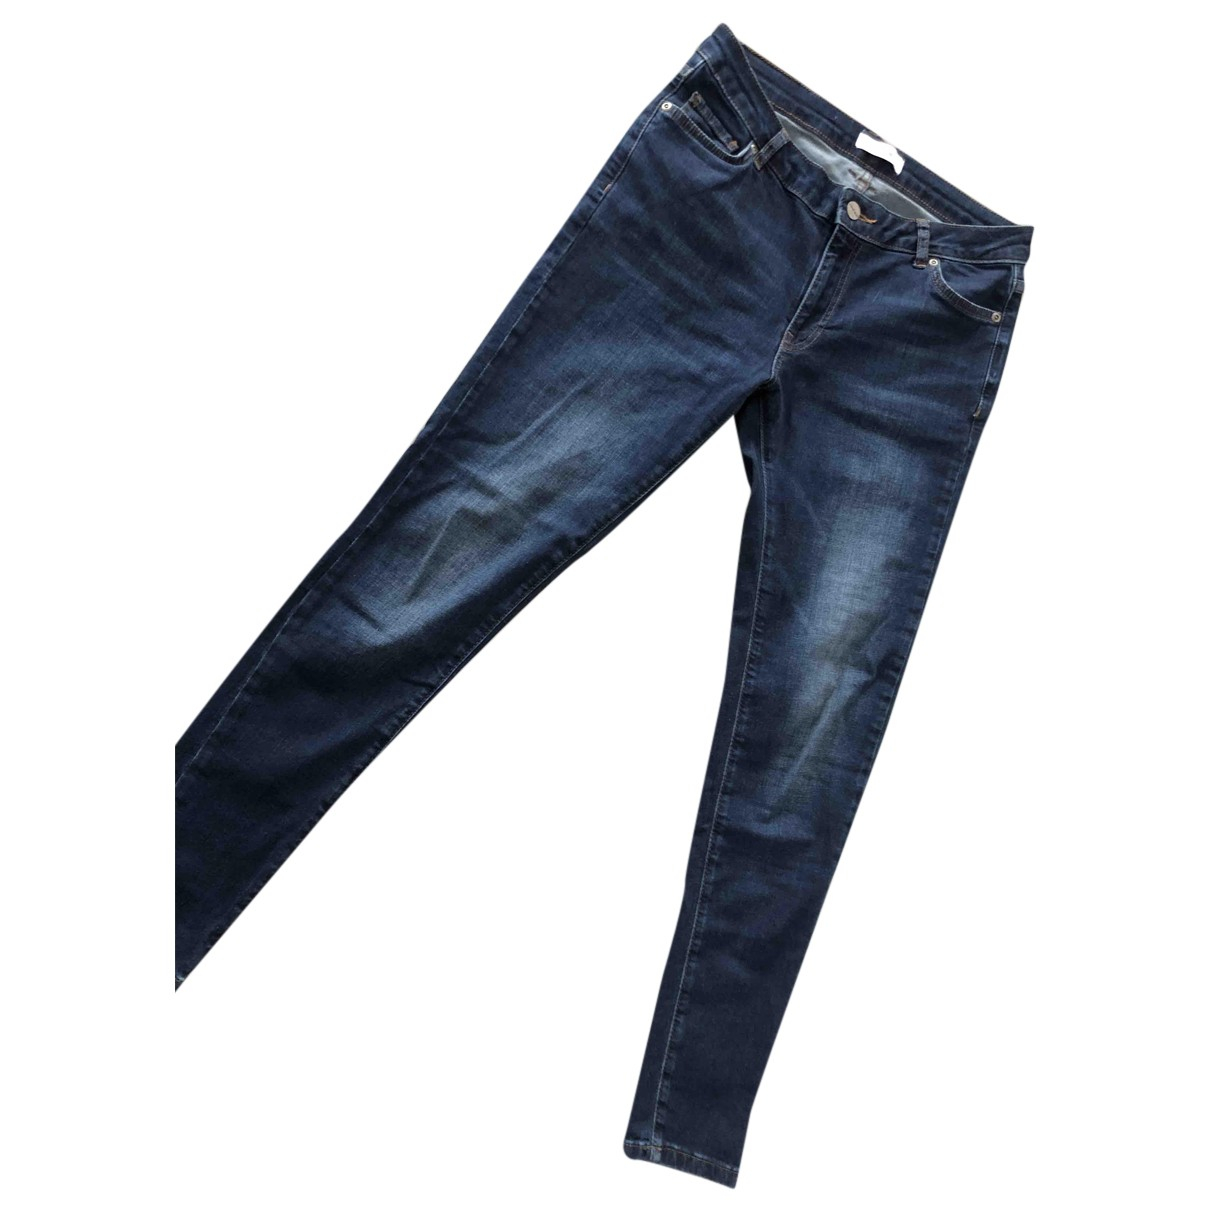 Anine Bing Spring Summer 2020 Navy Cotton - elasthane Jeans for Women 29 US